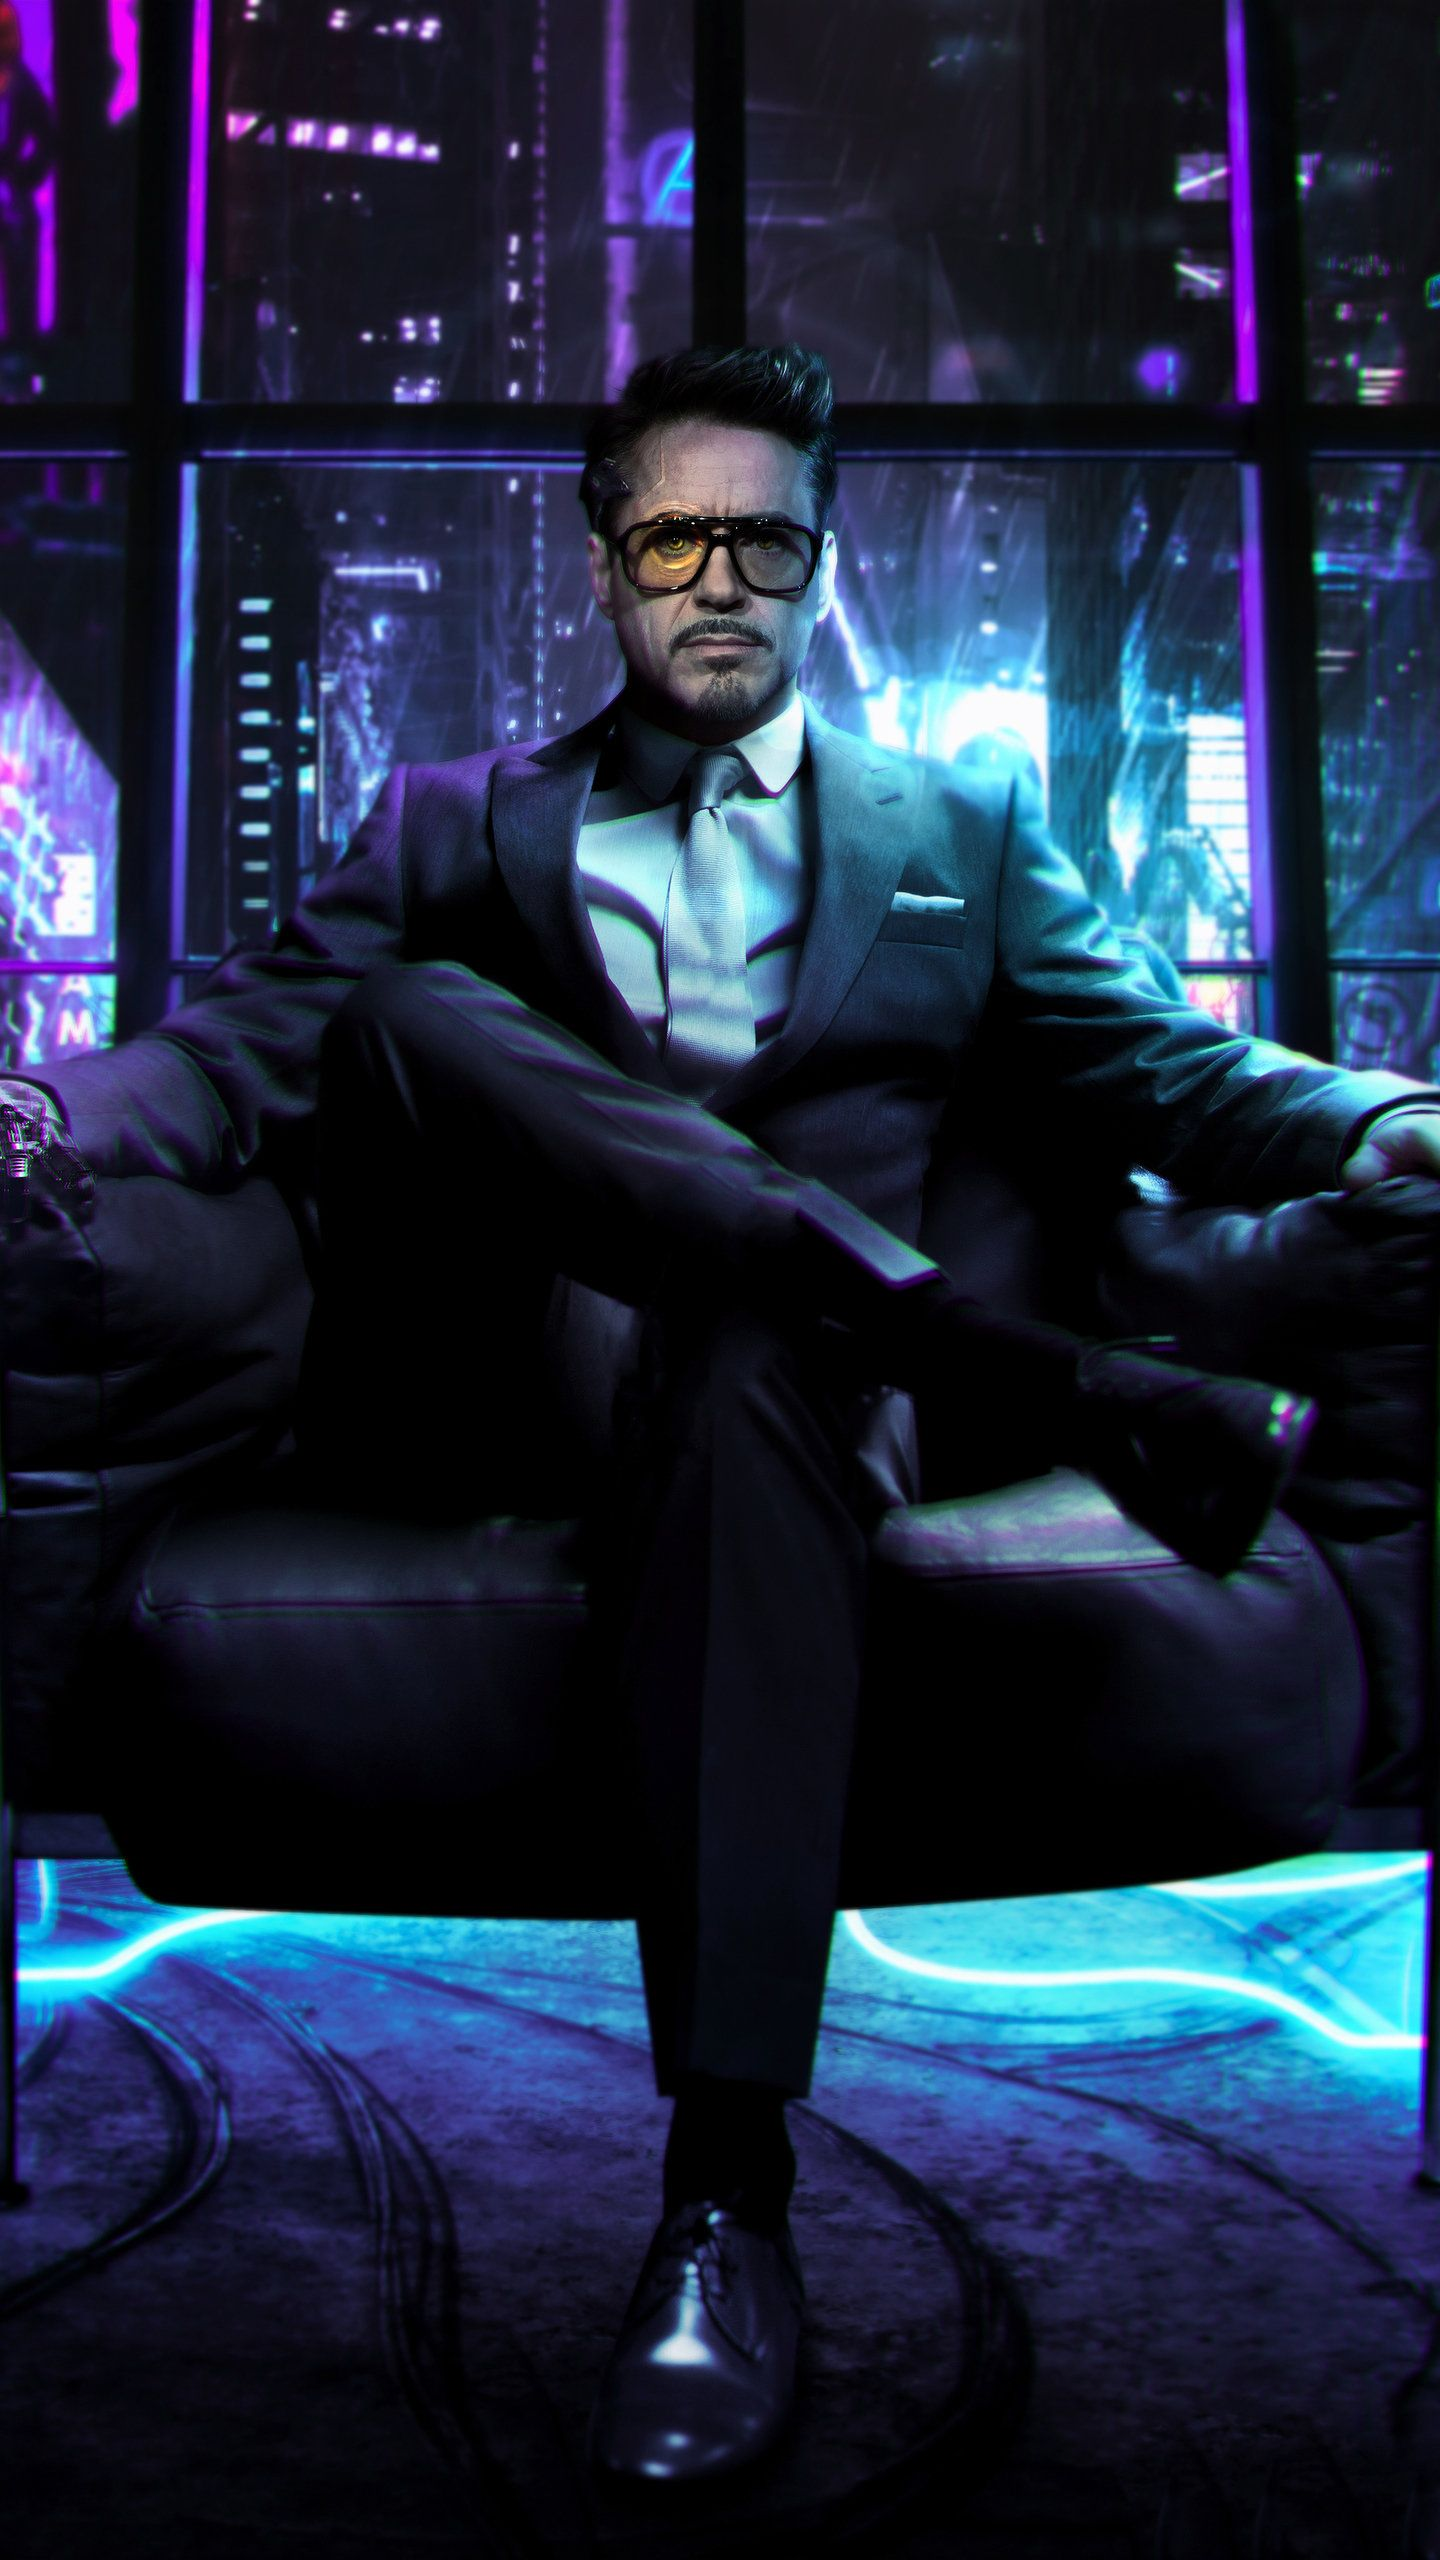 Cyberpunk 2077 Tony Stark, HD Games Wallpapers Photos and